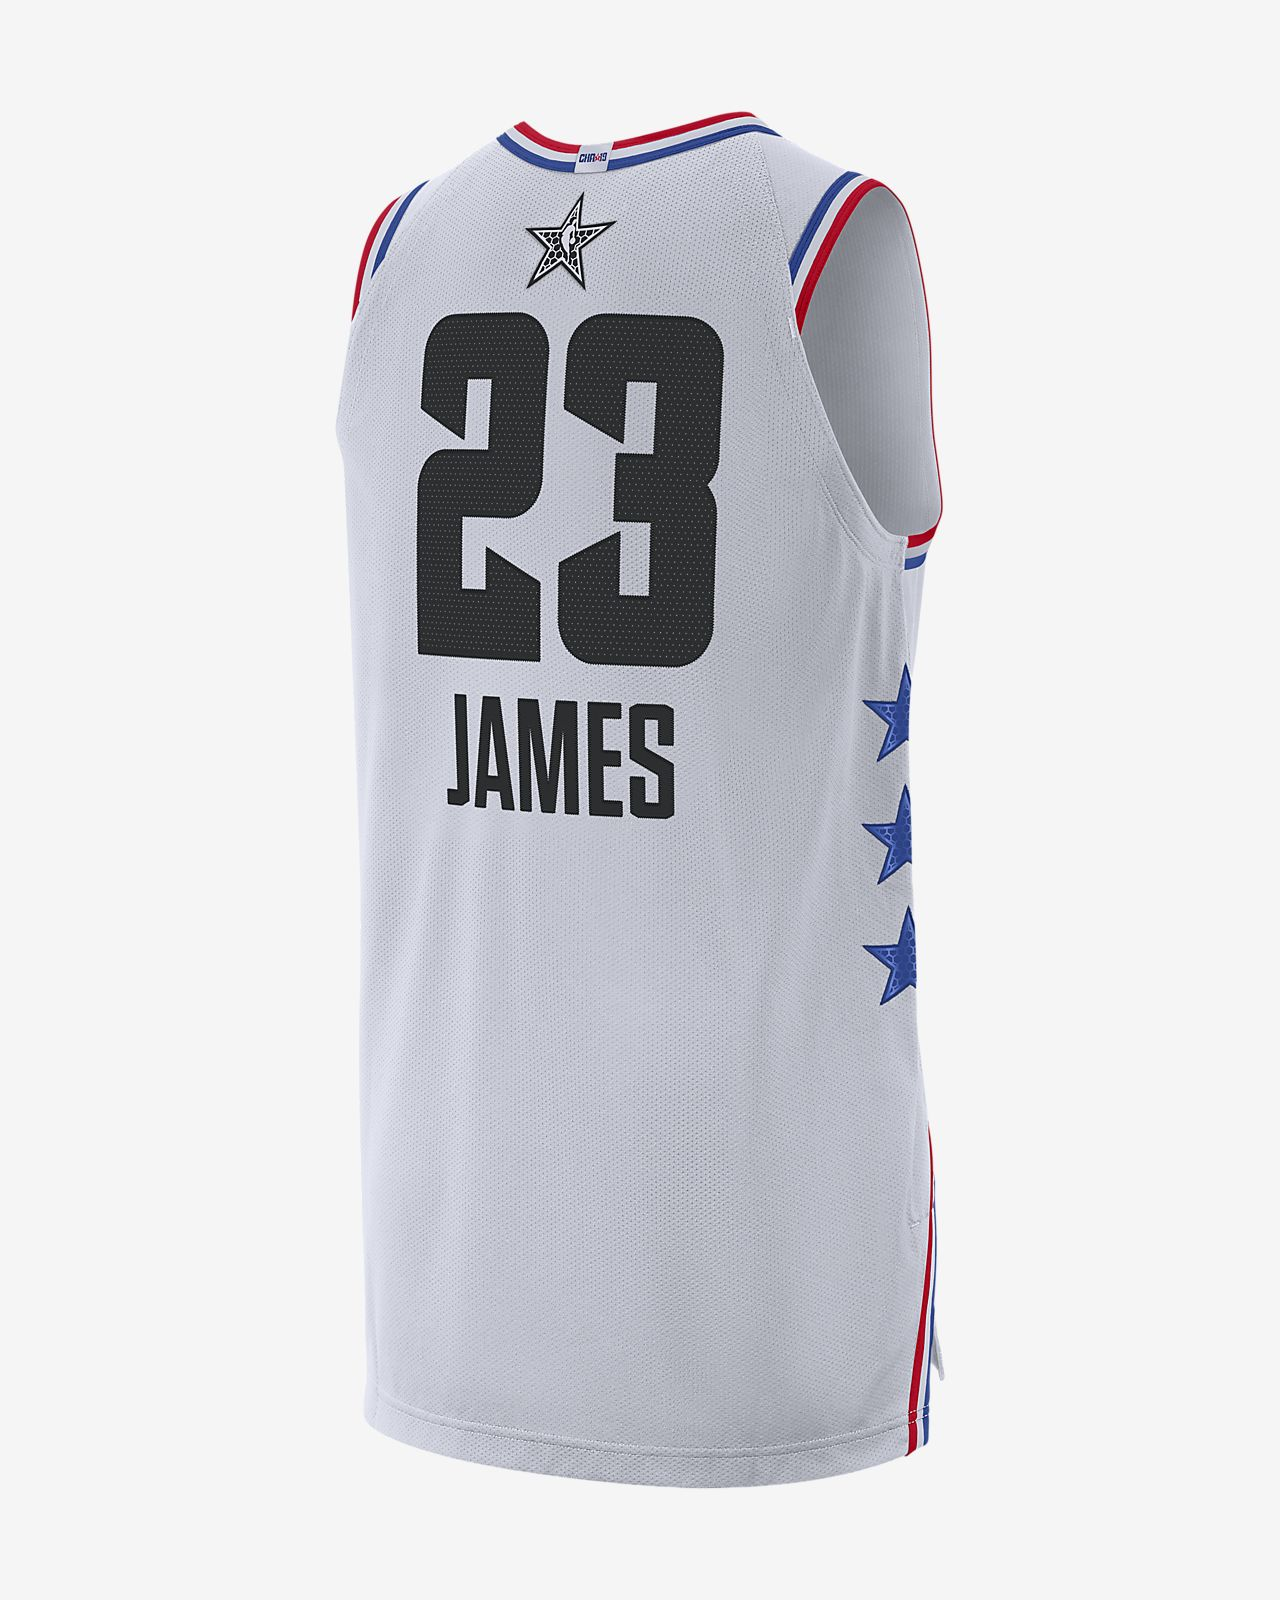 4c3984e65046 ... LeBron James All-Star Edition Authentic Men s Jordan NBA Connected  Jersey